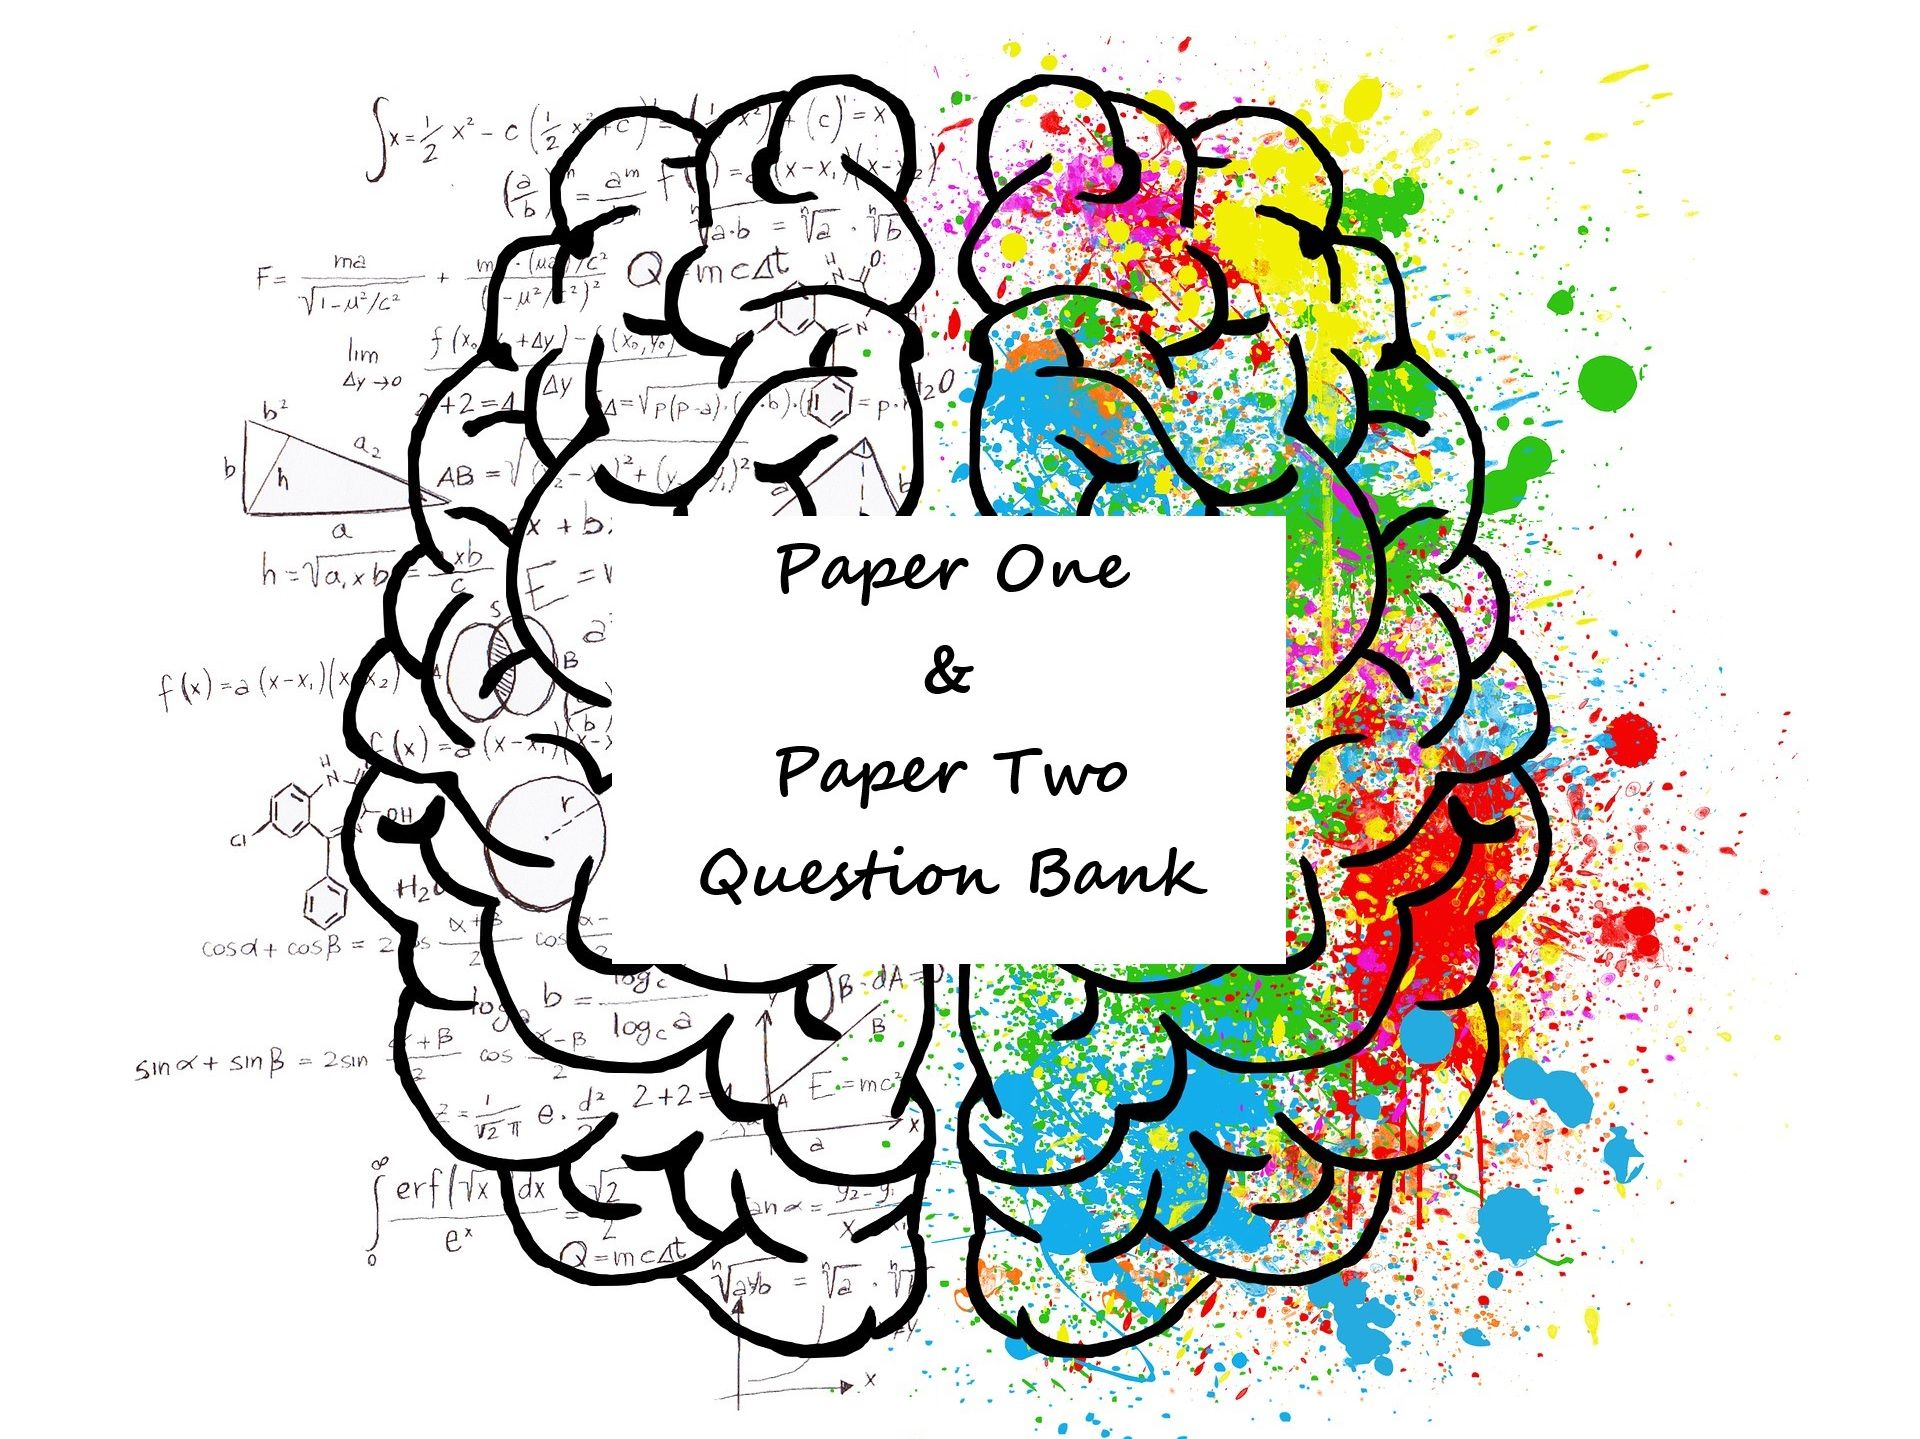 Question Bank: Paper One & Paper Two